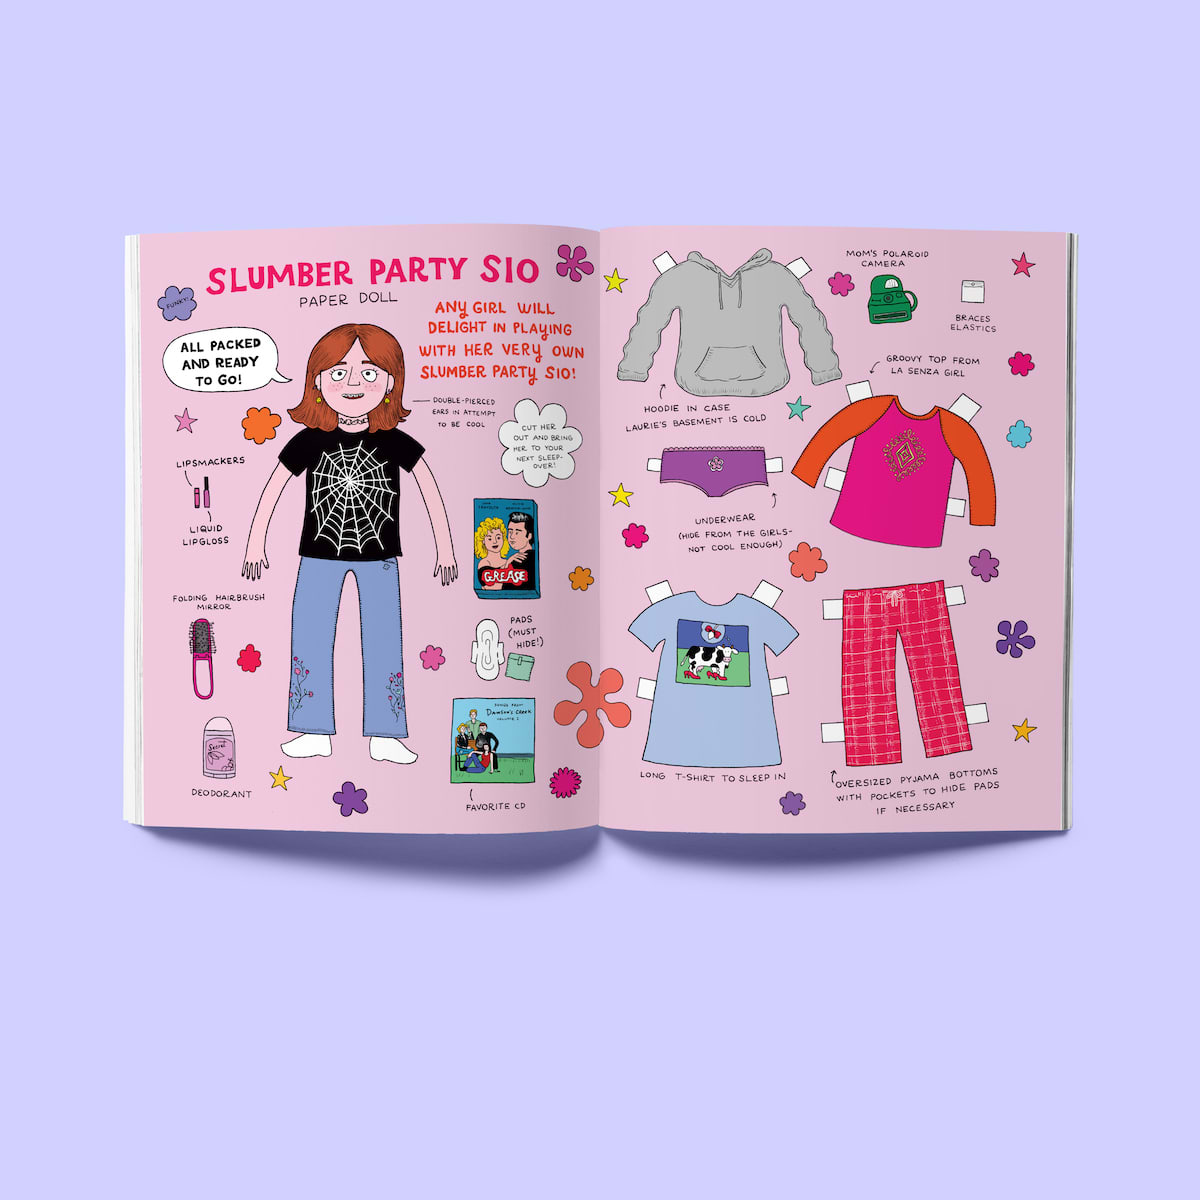 You're Invited to a Slumber Party!